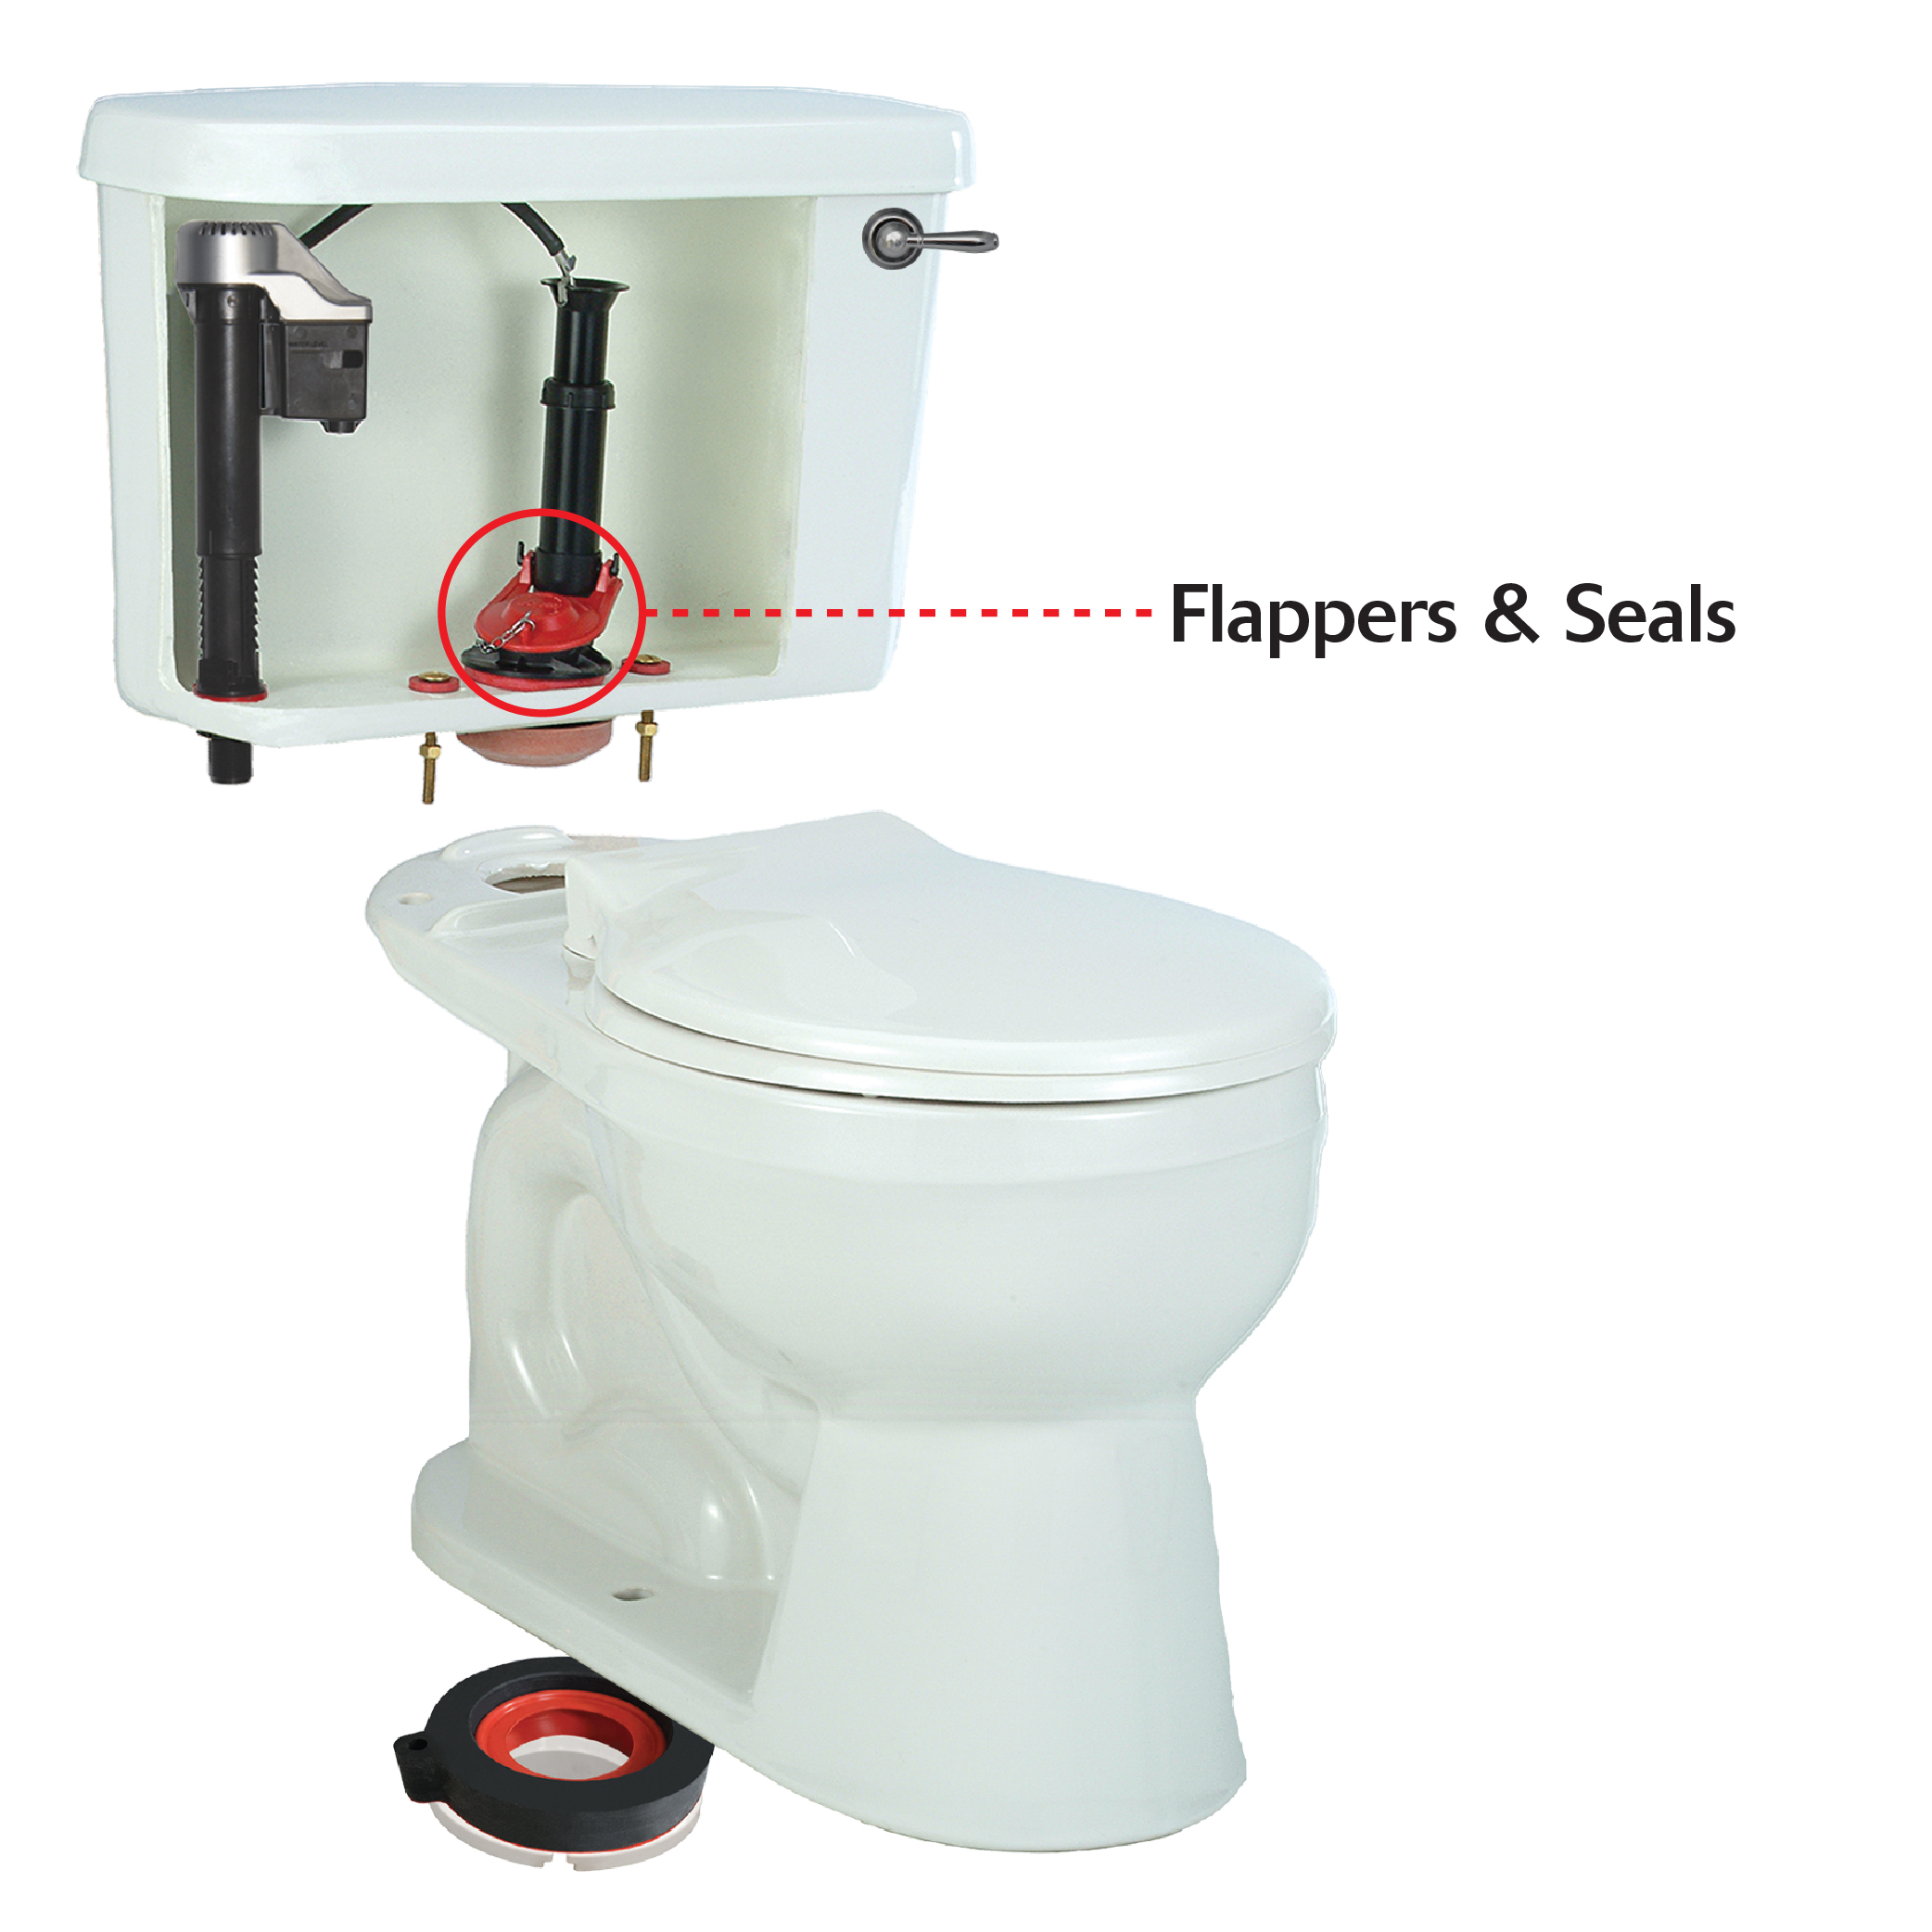 Toilet Flapper Toilet Flapper Replacement Replacing